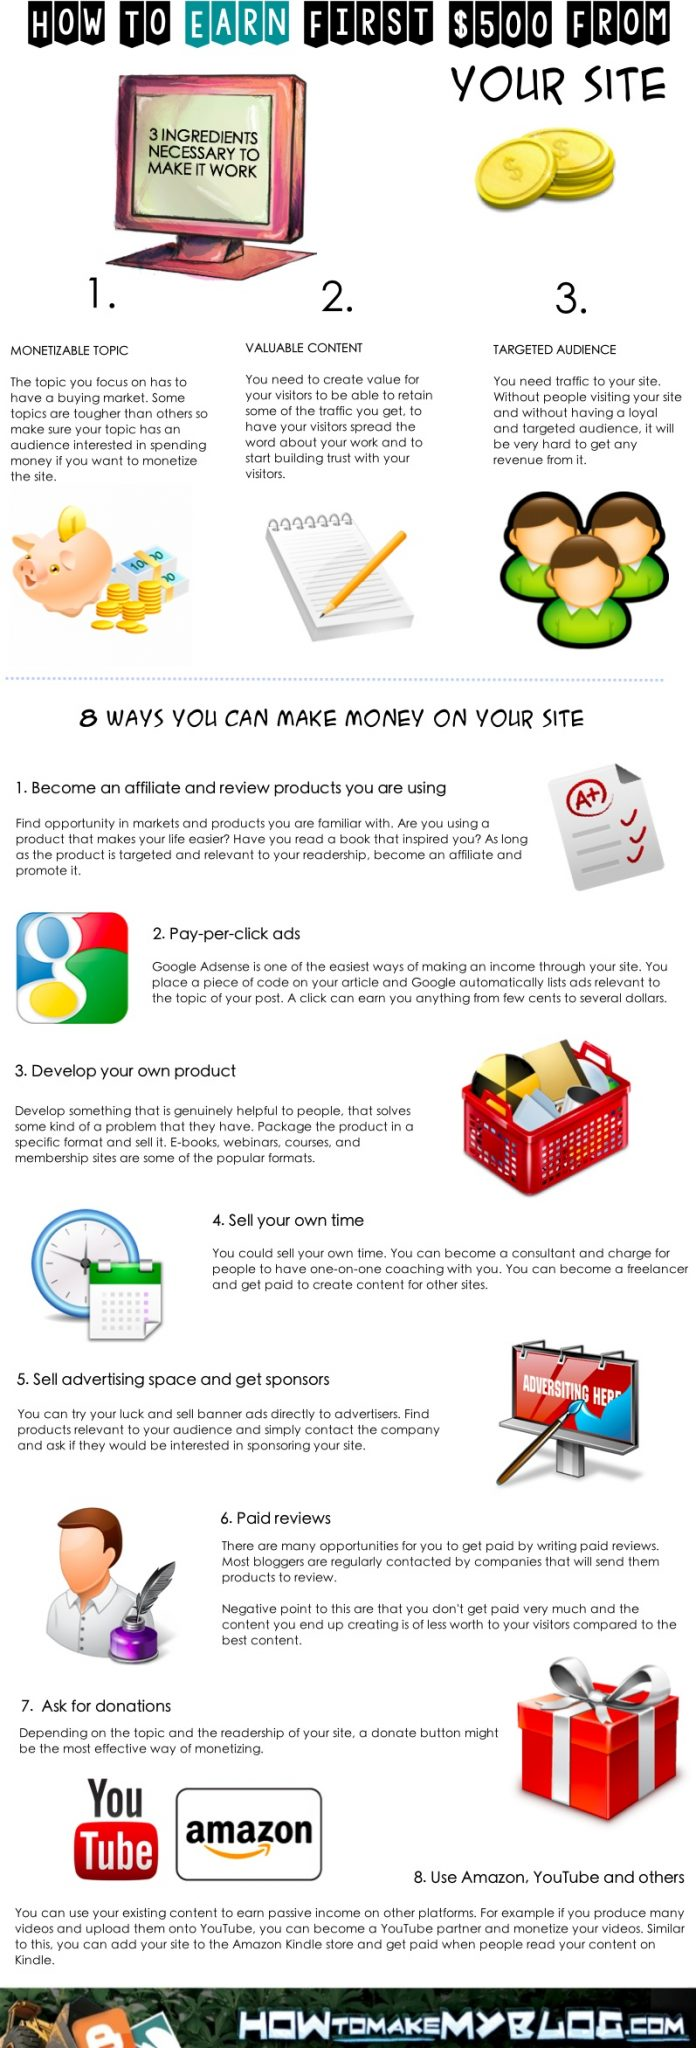 How to make money blogging: The infographic